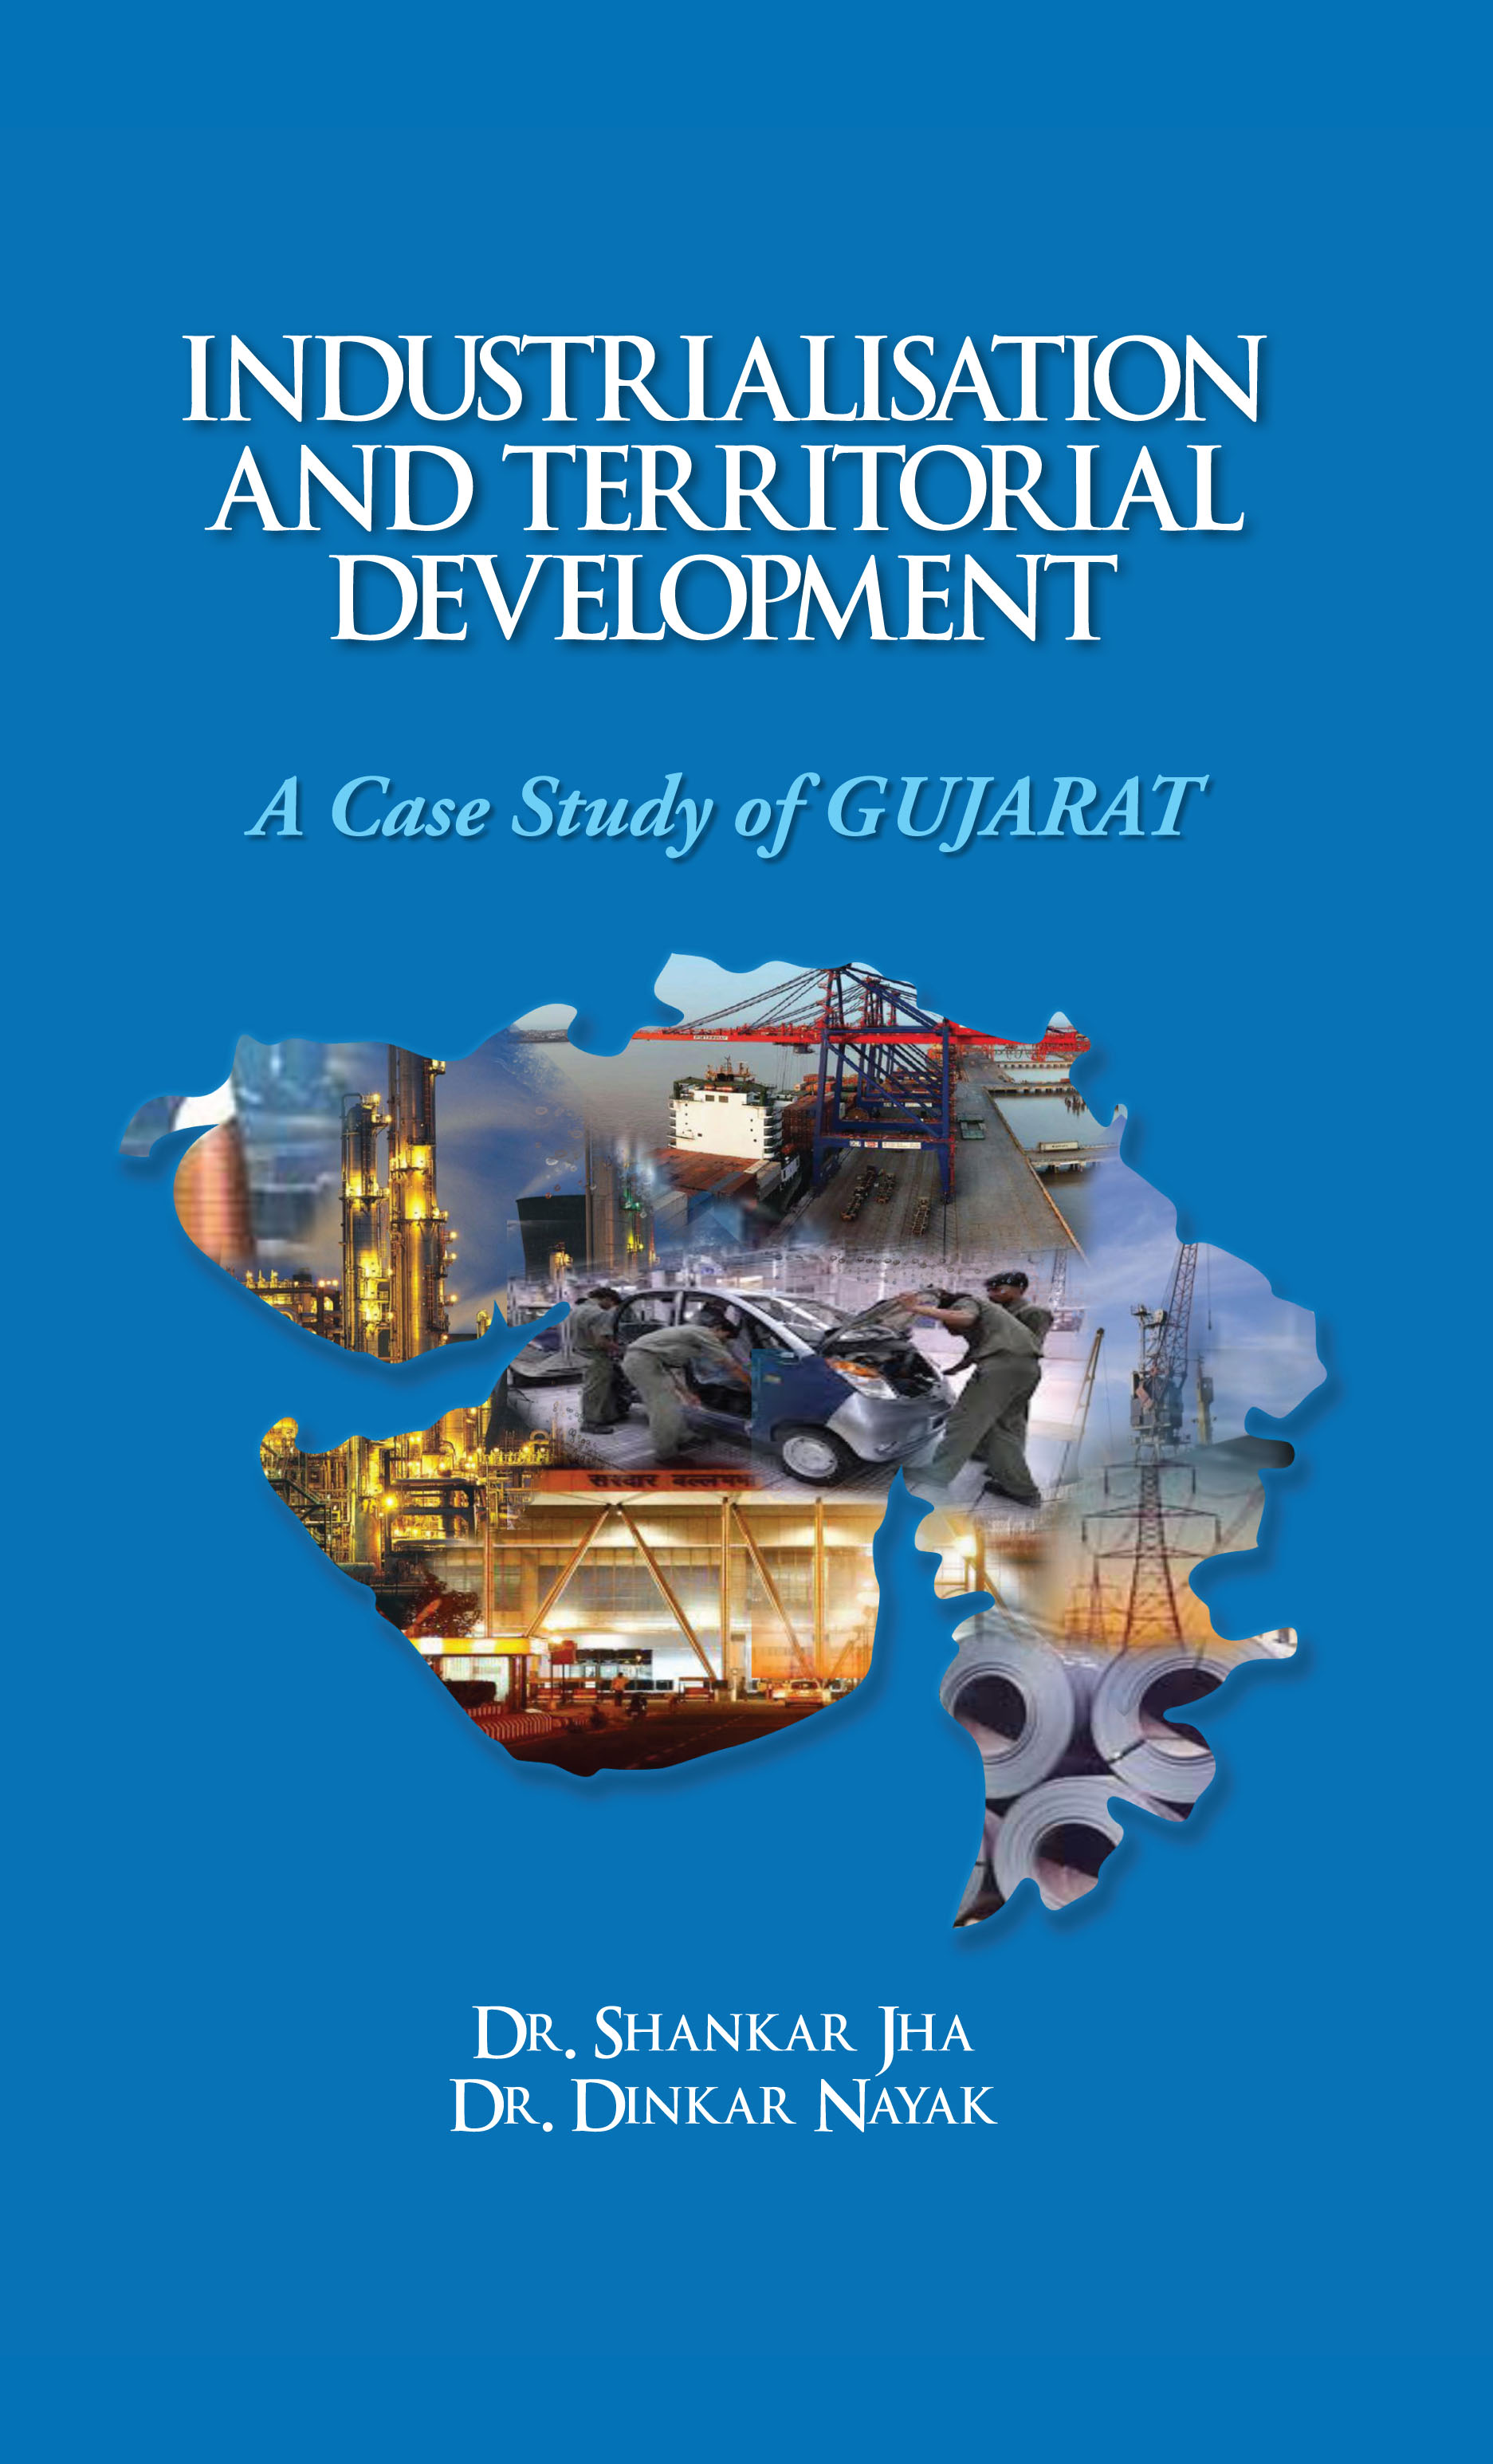 INDUSTRIALISATION AND TERRITORIAL DEVELOPMENT: A Case Study of Gujarat